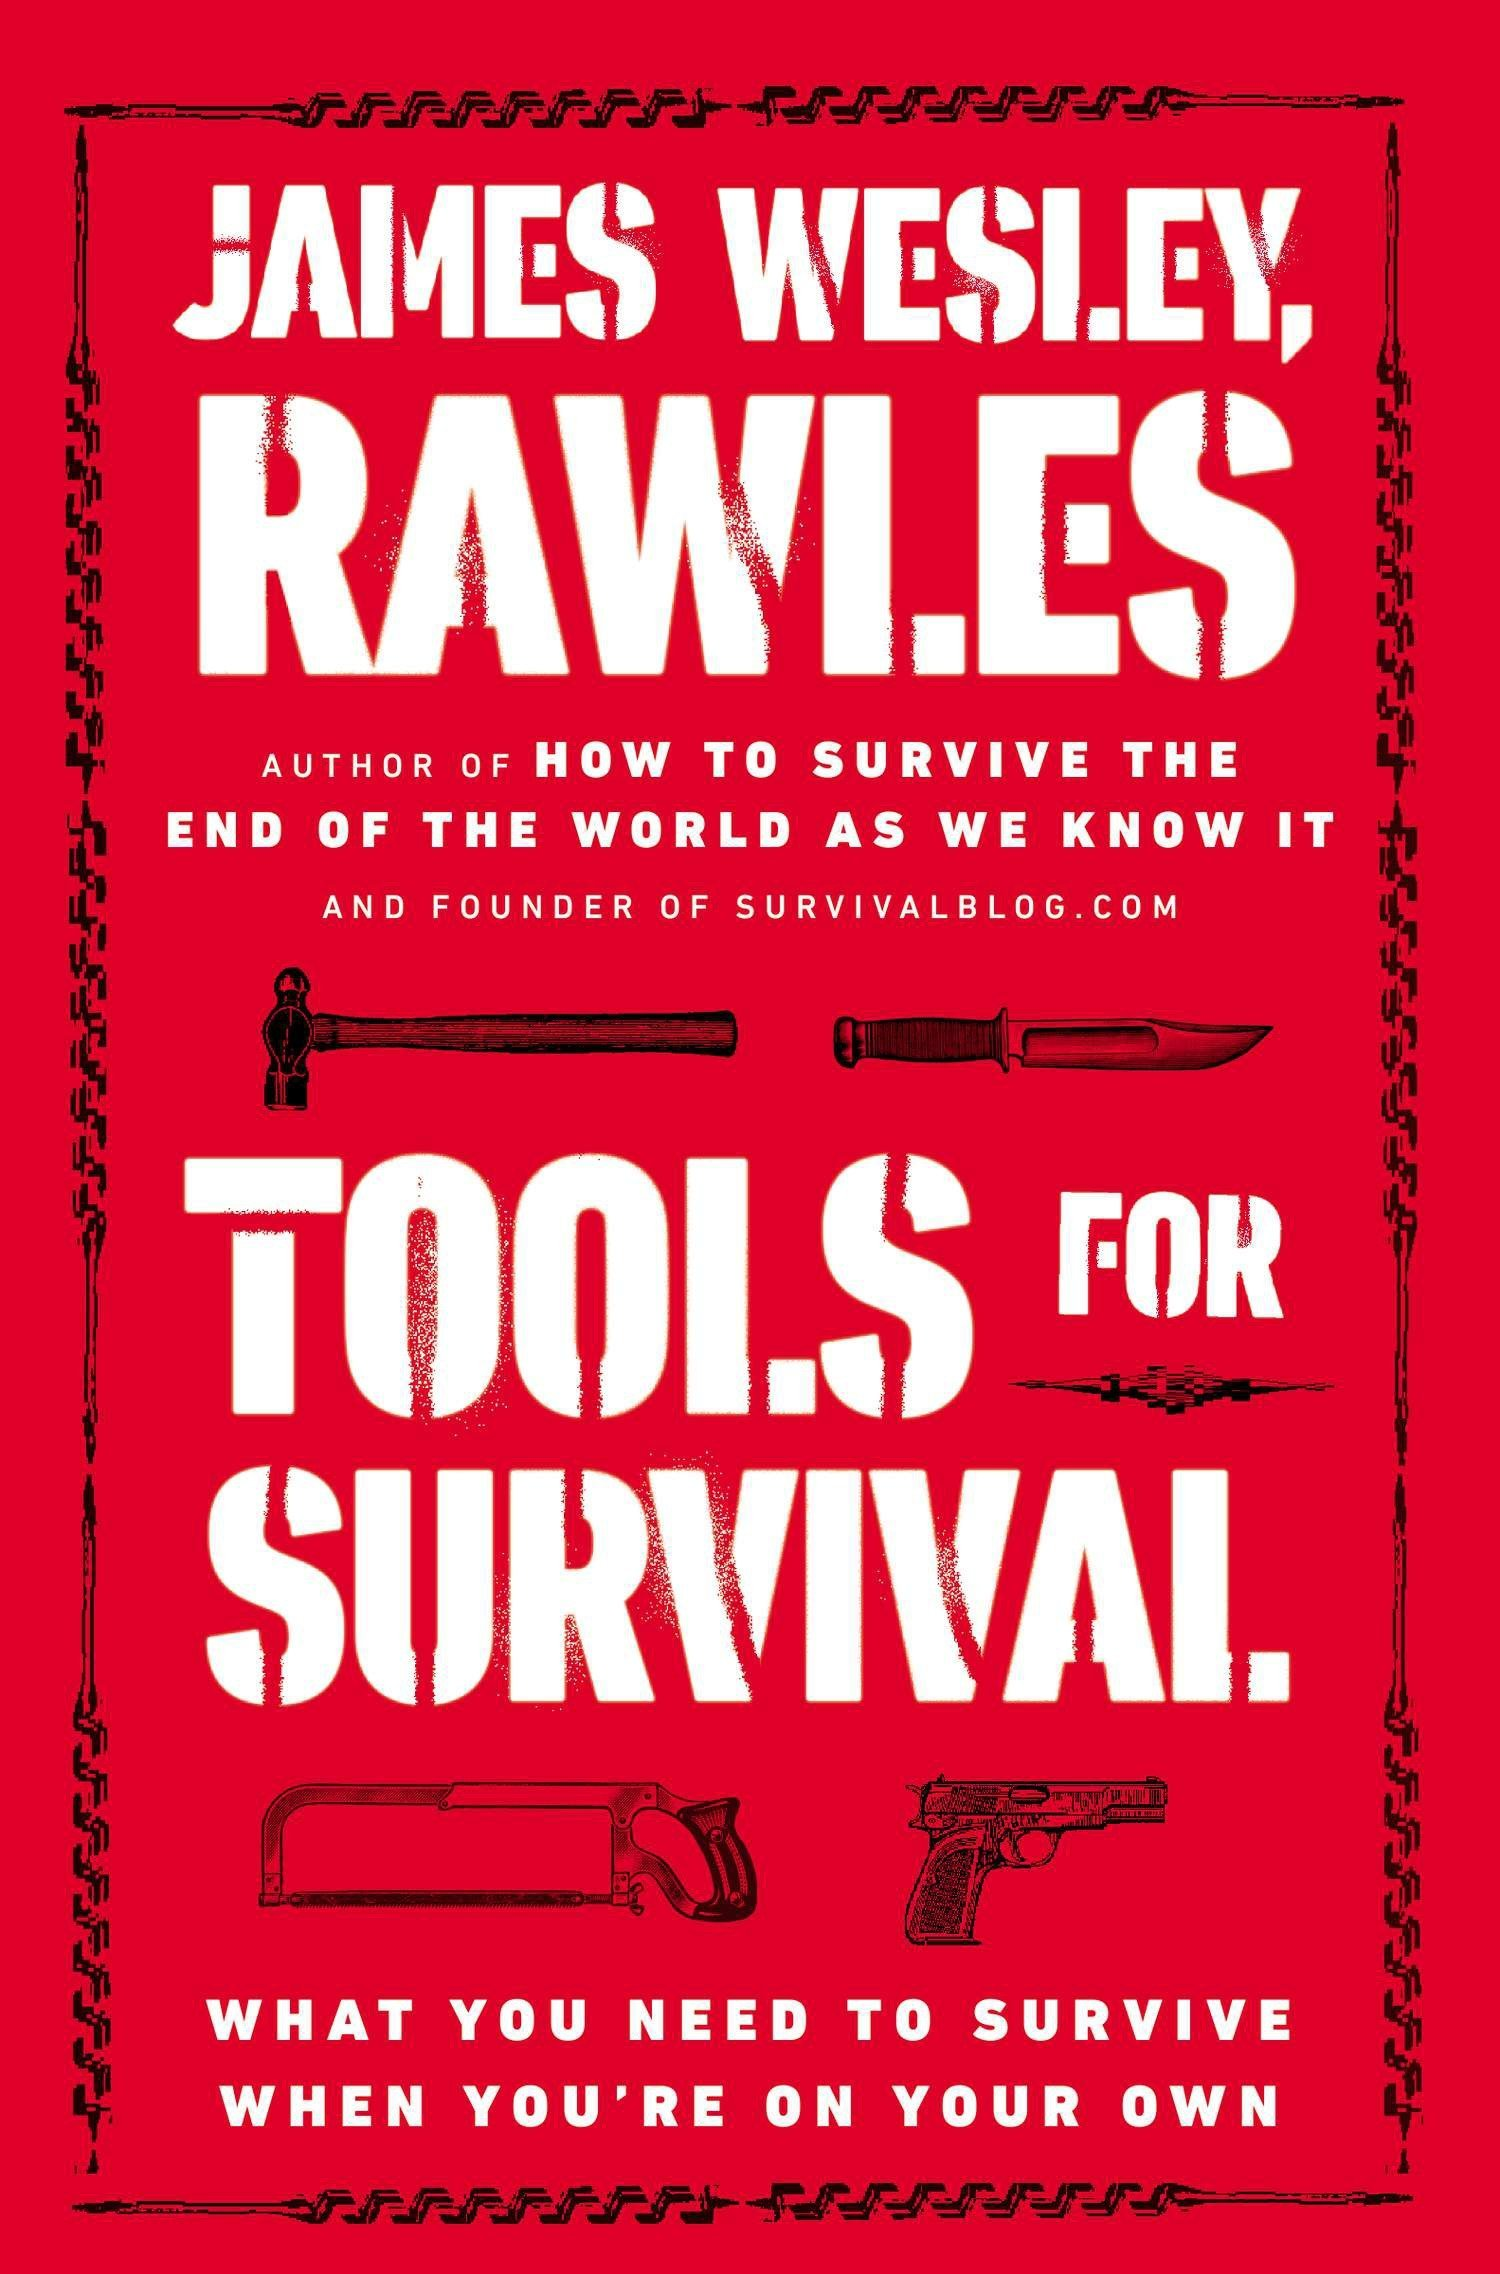 Tools for Survival: What You Need to Survive When You're on Your Own Paperback – December 30, 2014 James Wesley Rawles Plume 0452298121 Outdoor Skills